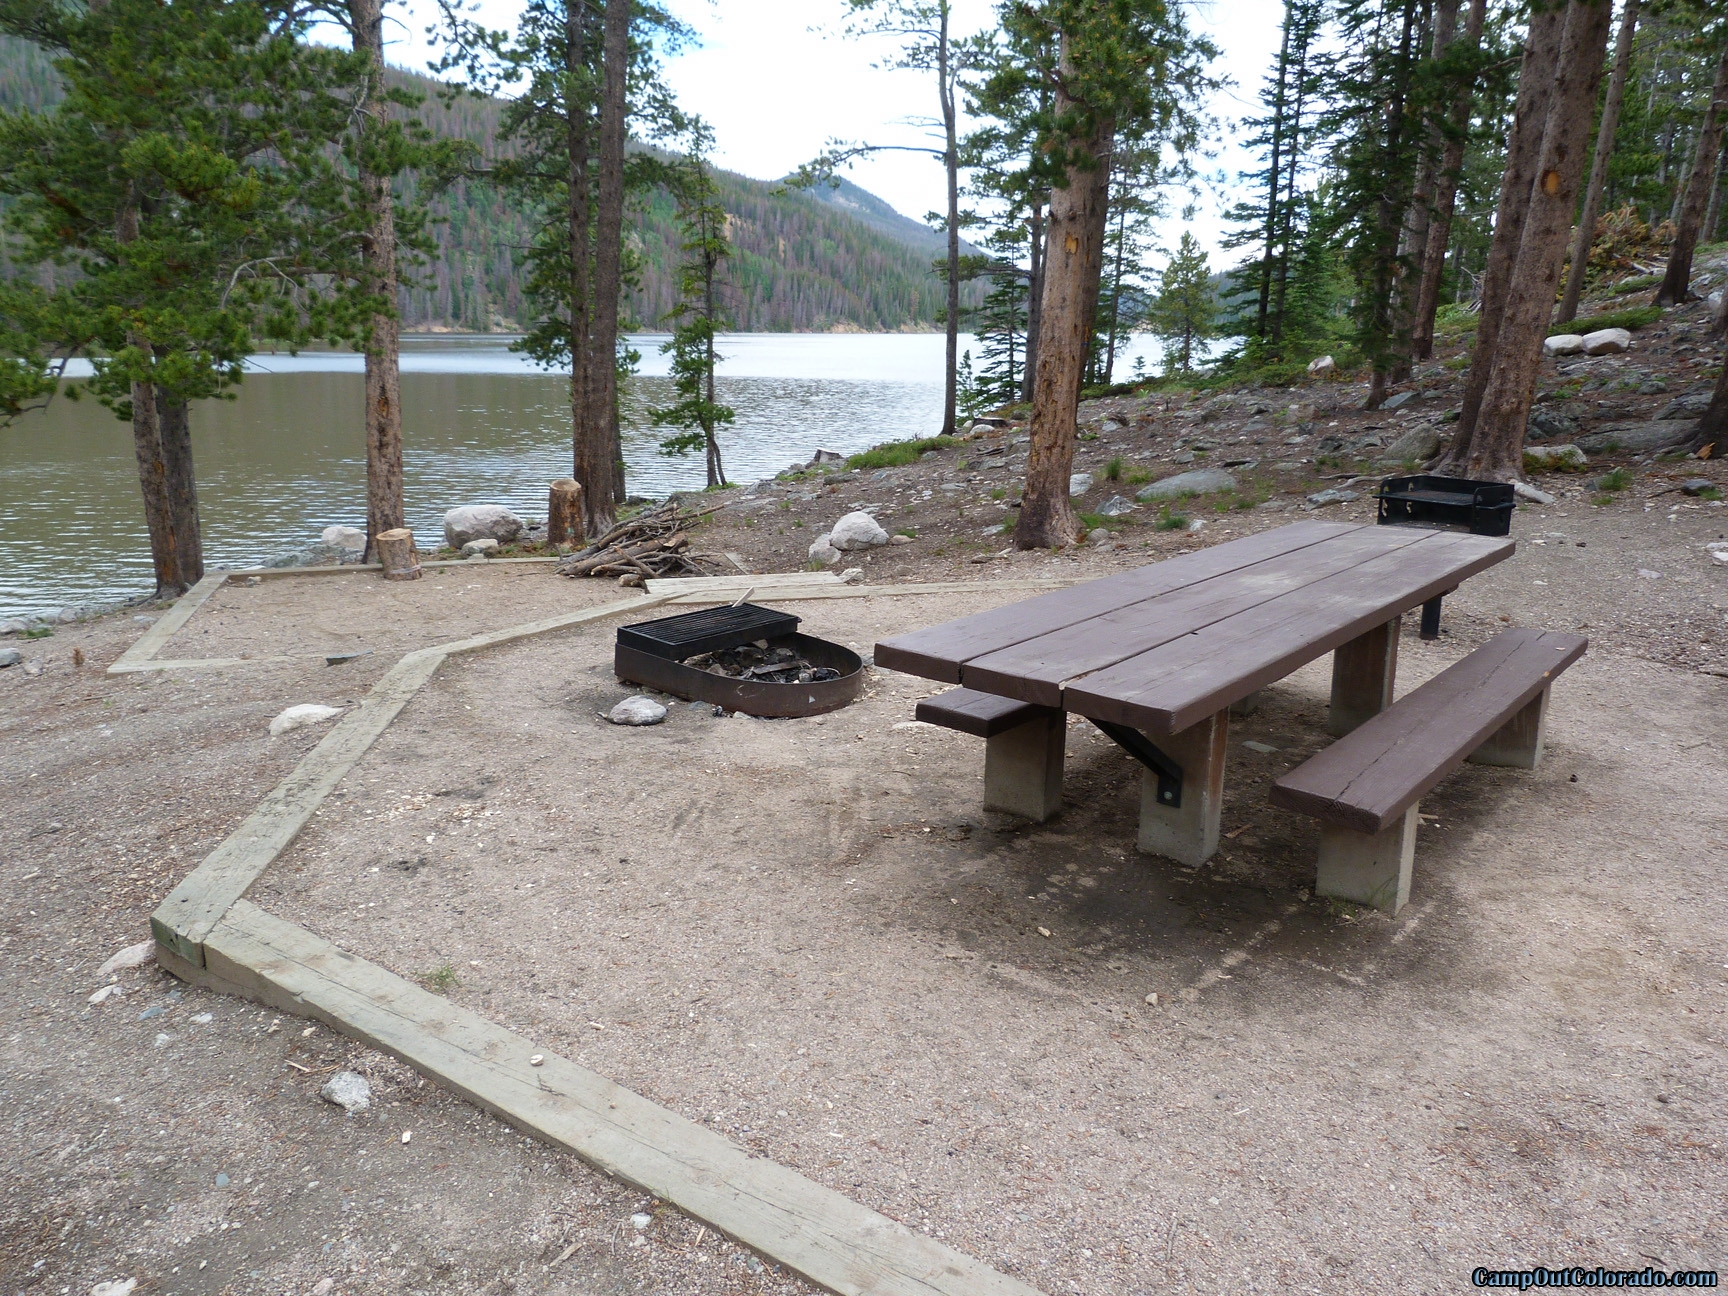 camp-out-colorado-chambers-lake-campground-lake-side-camping